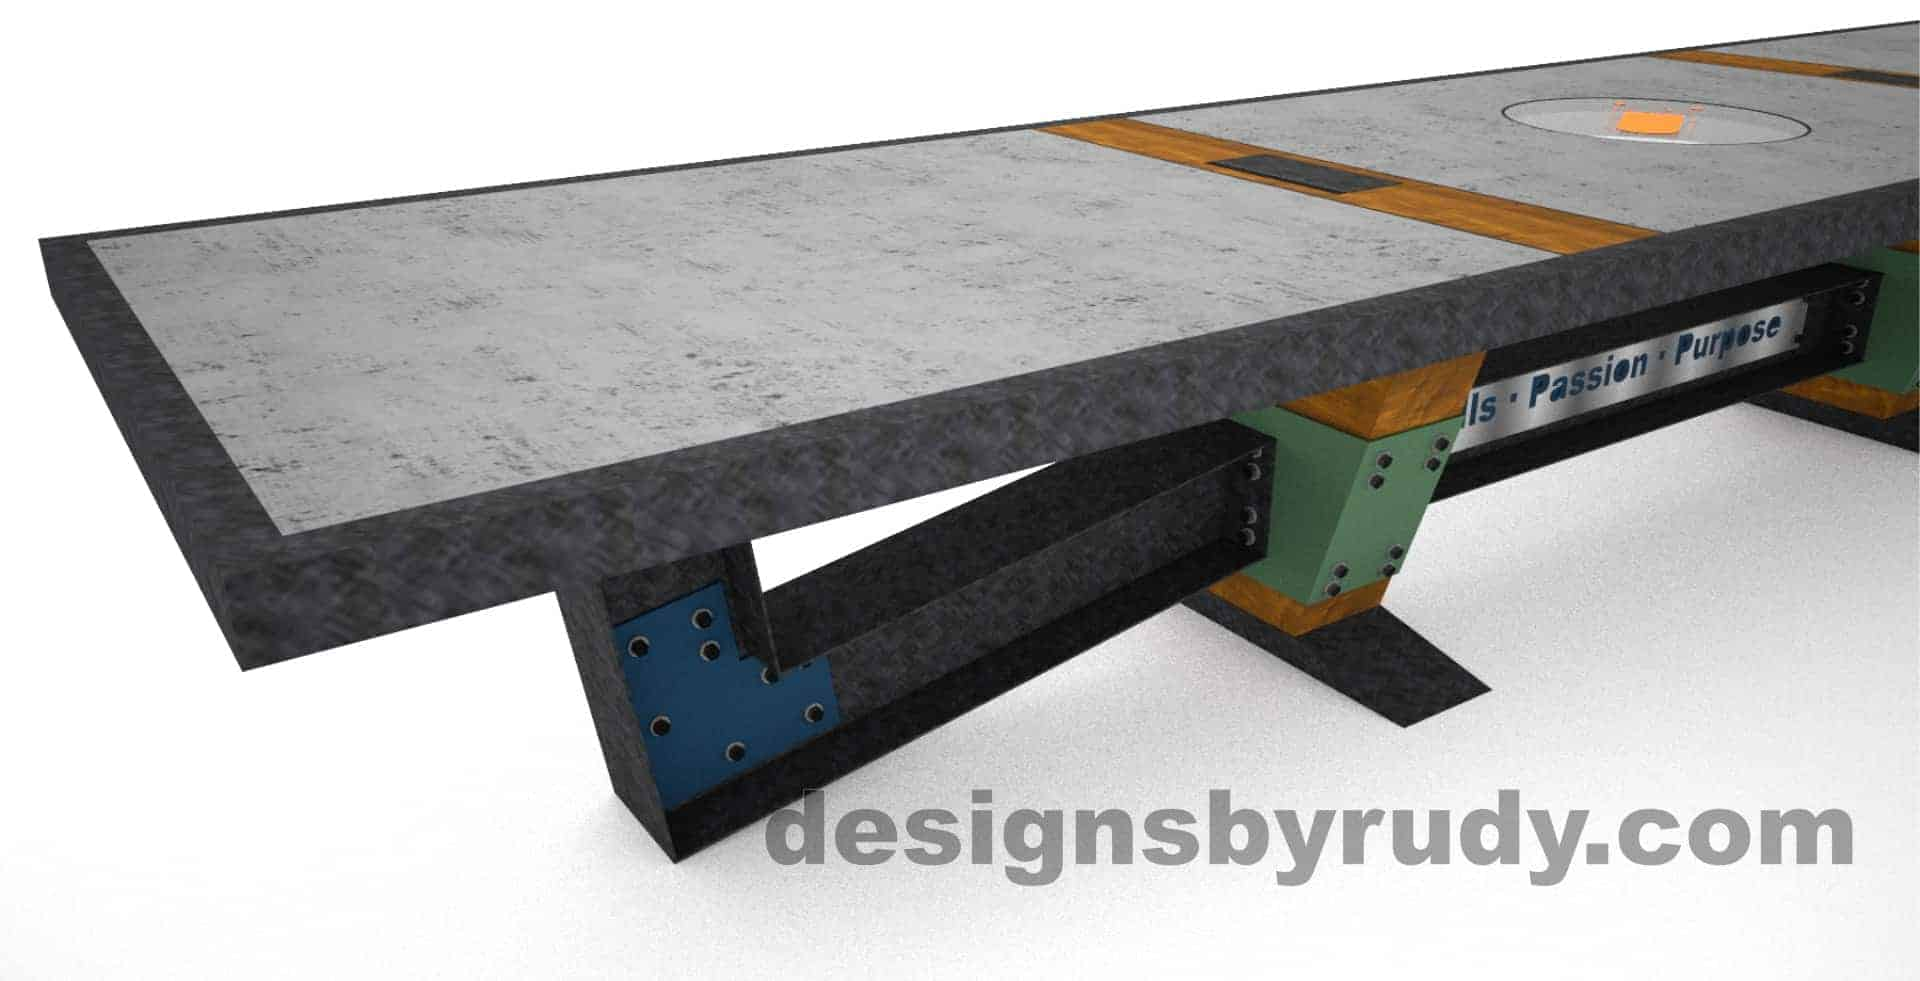 9 Concept concrete, steel, and wood conference table full top view